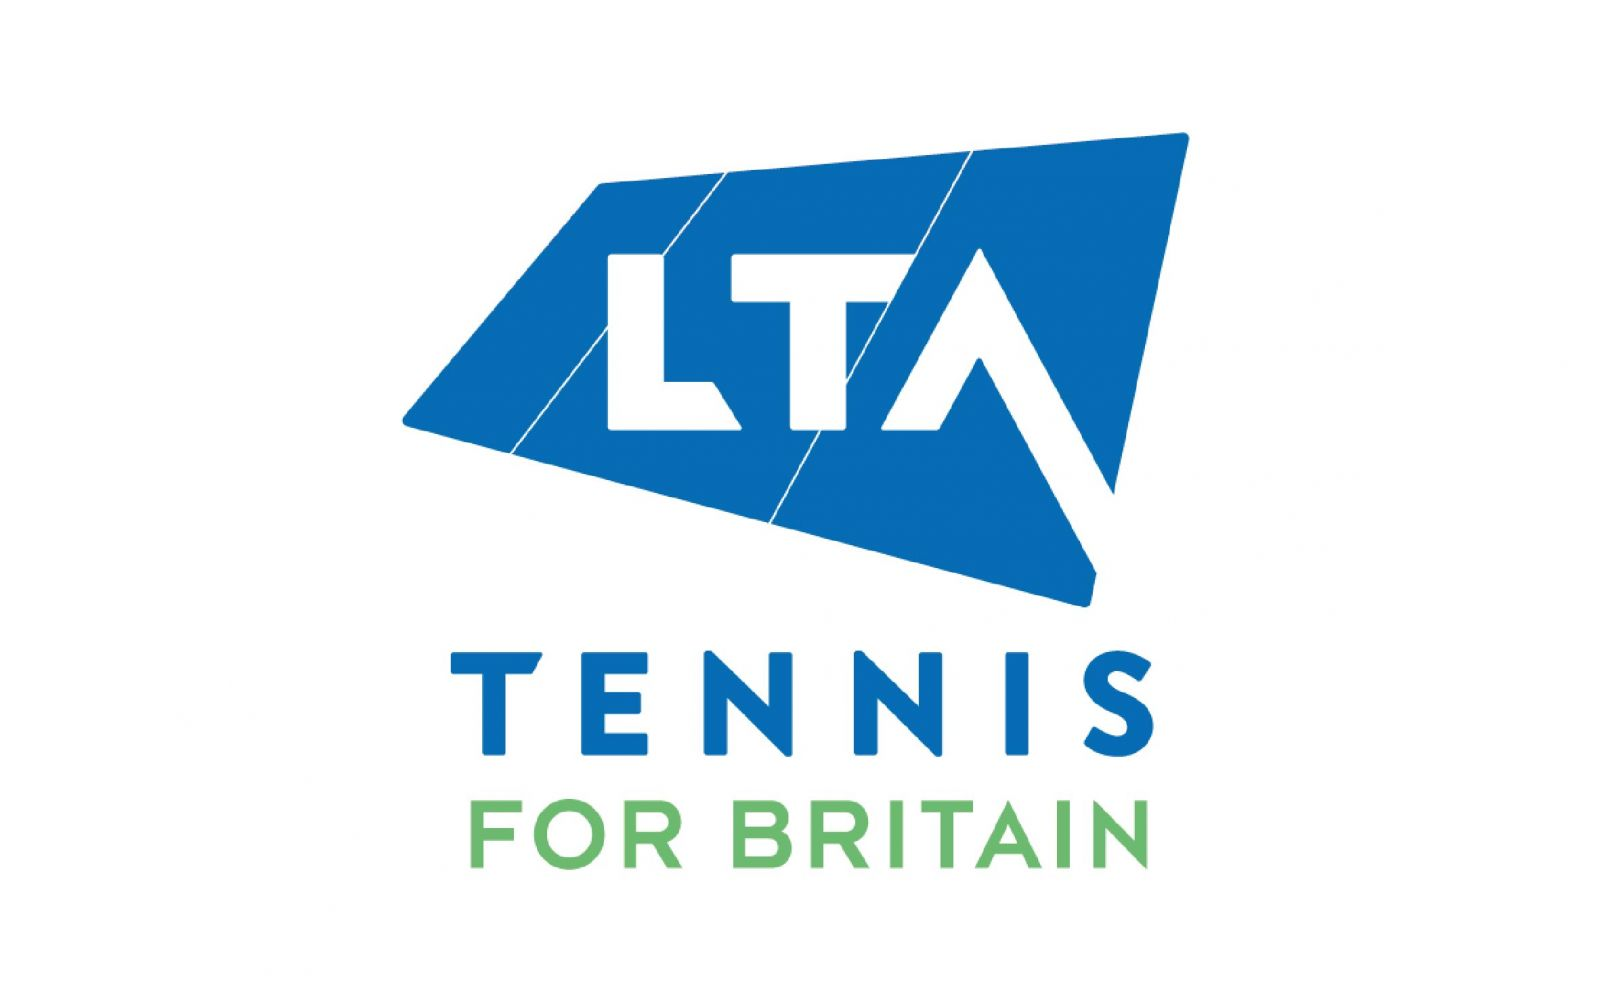 The LTA selects ICTS UK & Ireland's Canine teams to secure tennis tournaments